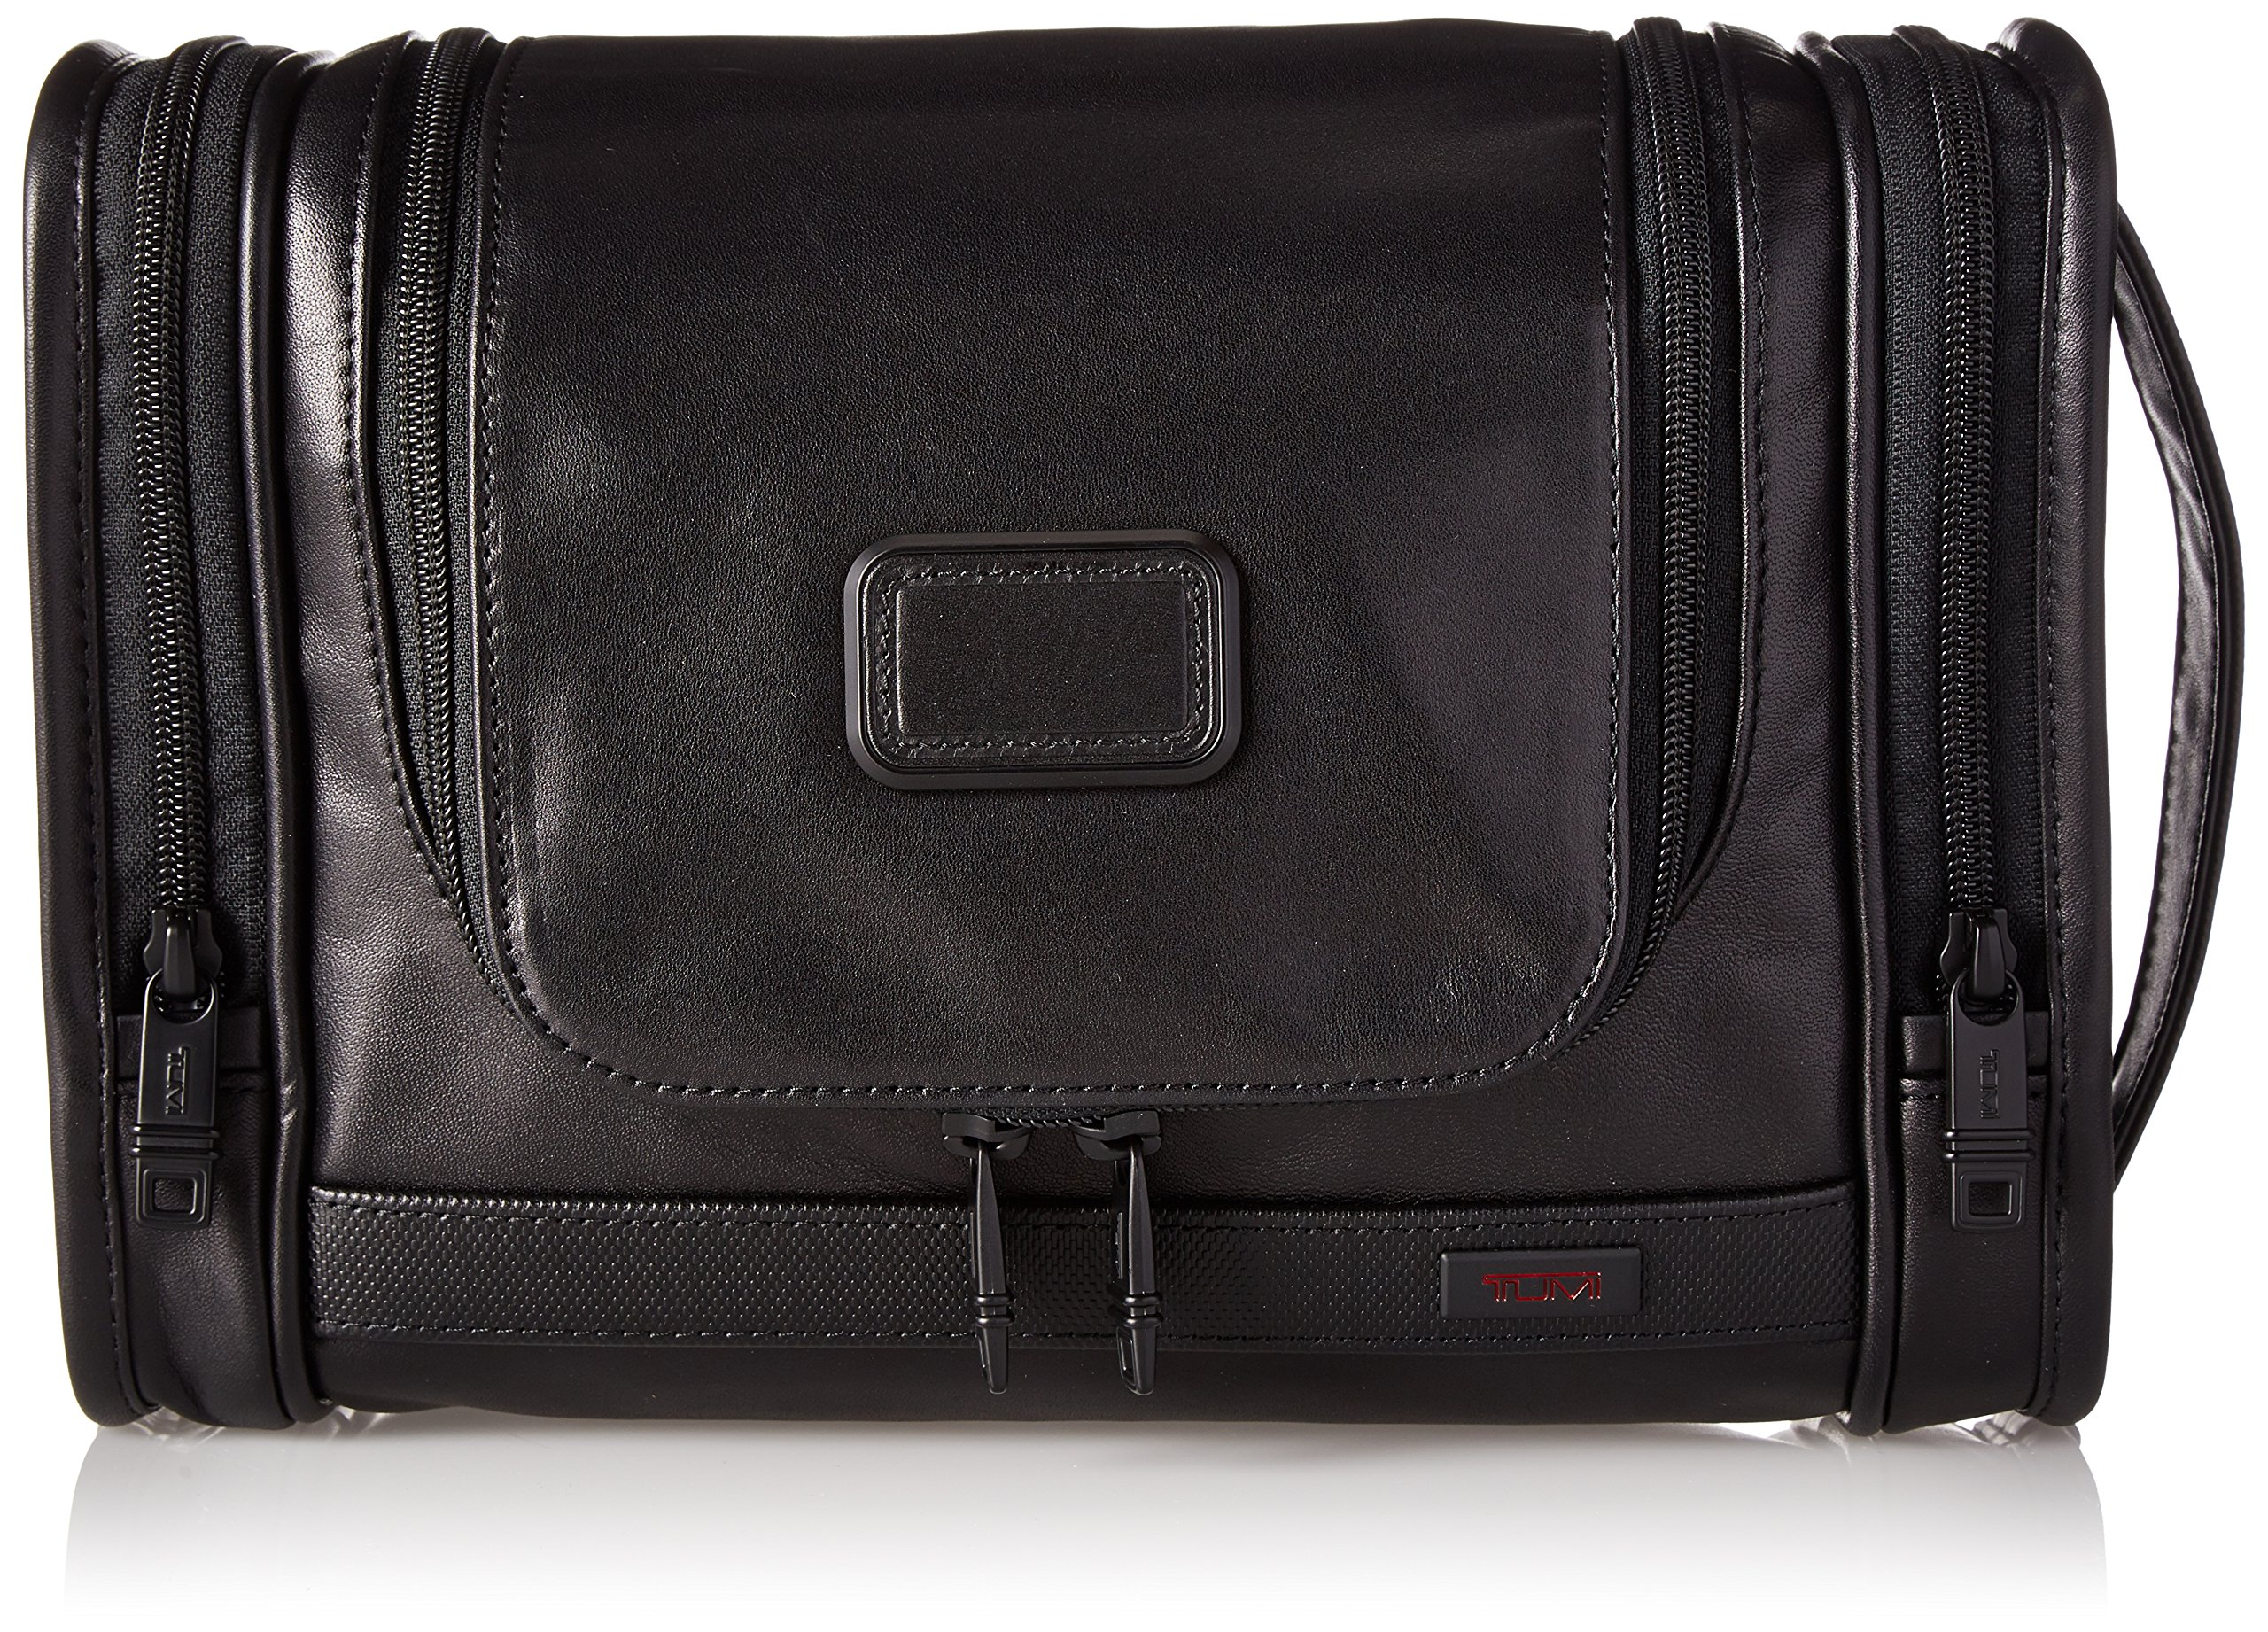 Tumi Alpha 2 Hanging Leather Travel Kit, Black, One Size by Tumi